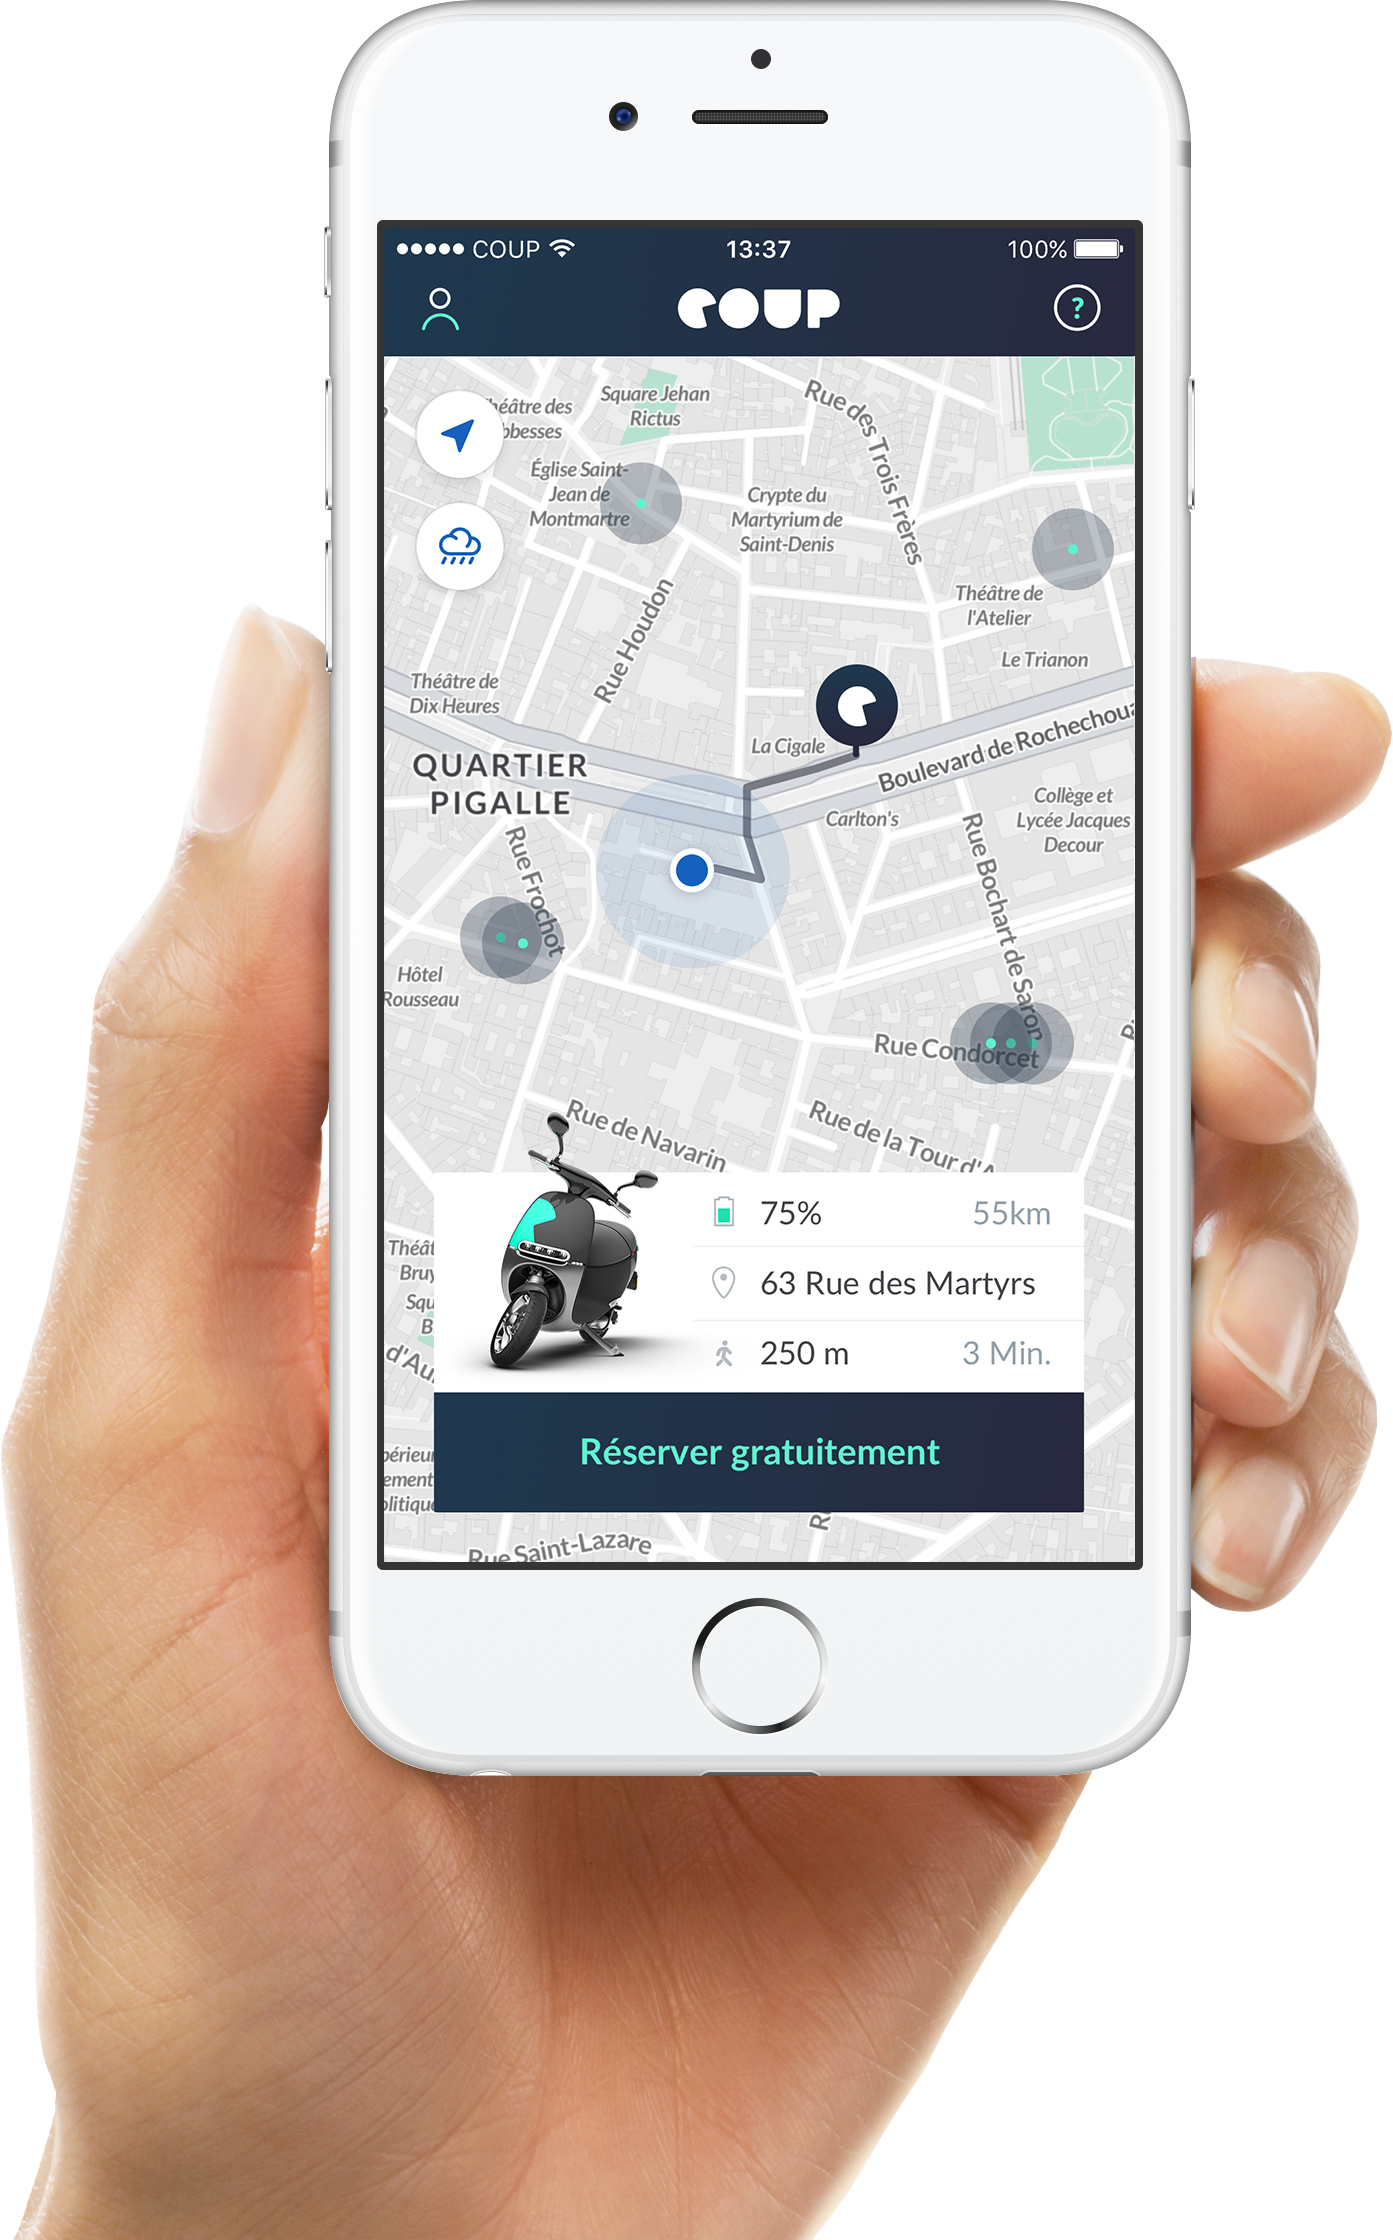 Coup Electric scooter mobile app